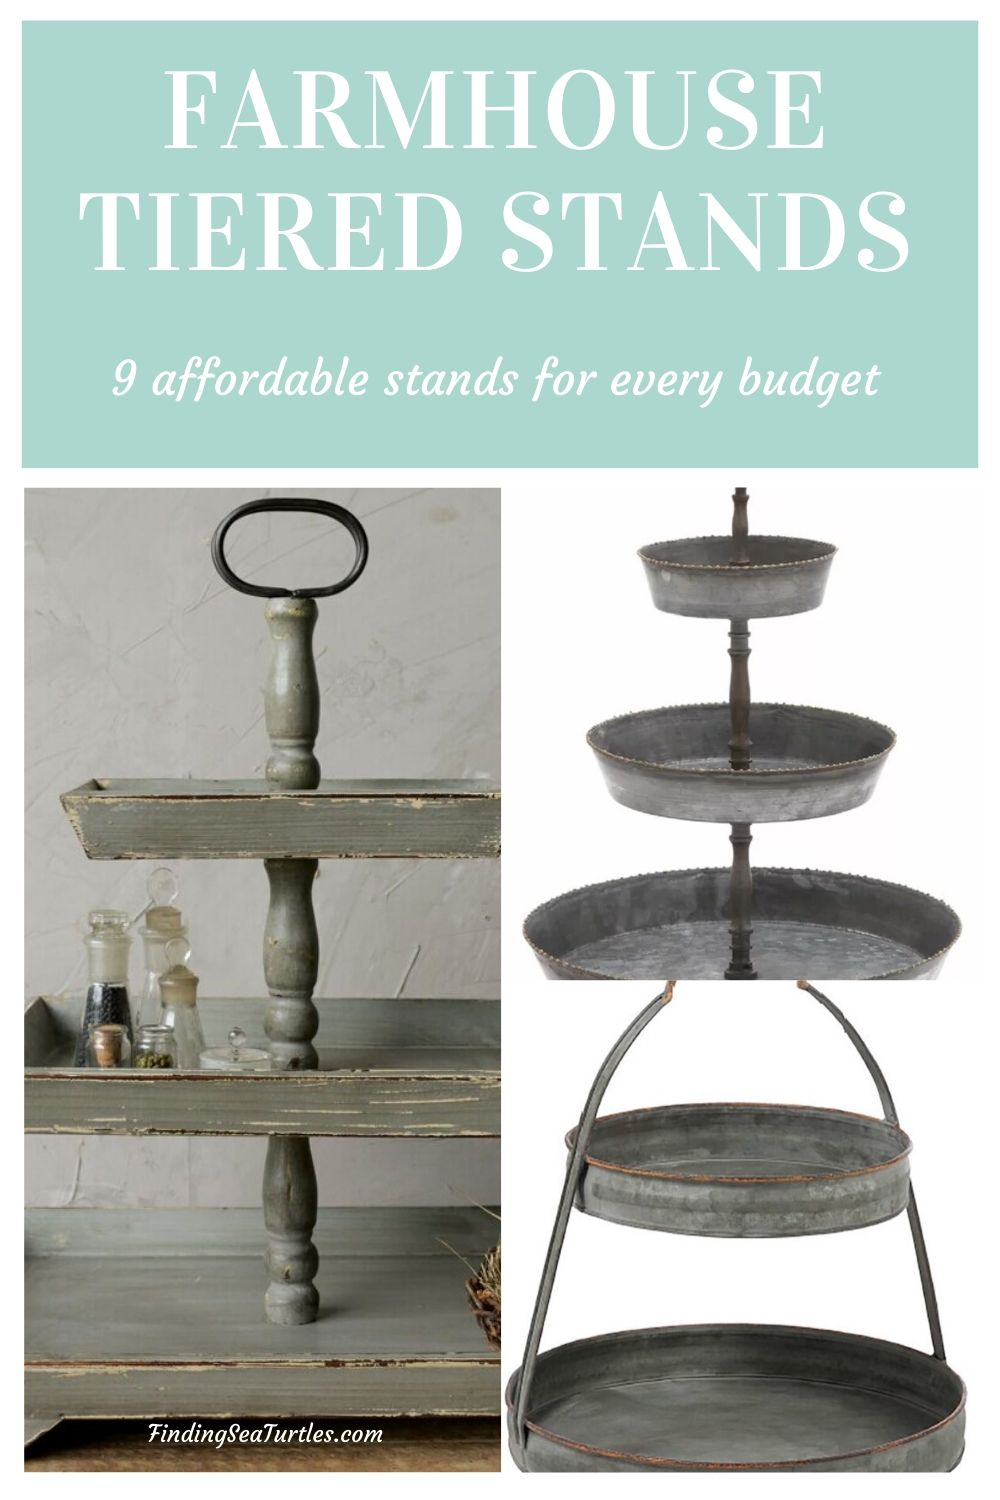 The Farmhouse Stand 9 affordable stands 2 #TierStands #TierTrayStandd #Decor #FarmhouseDecor #RusticDecor #VintageDecor #CountryStyleDecor